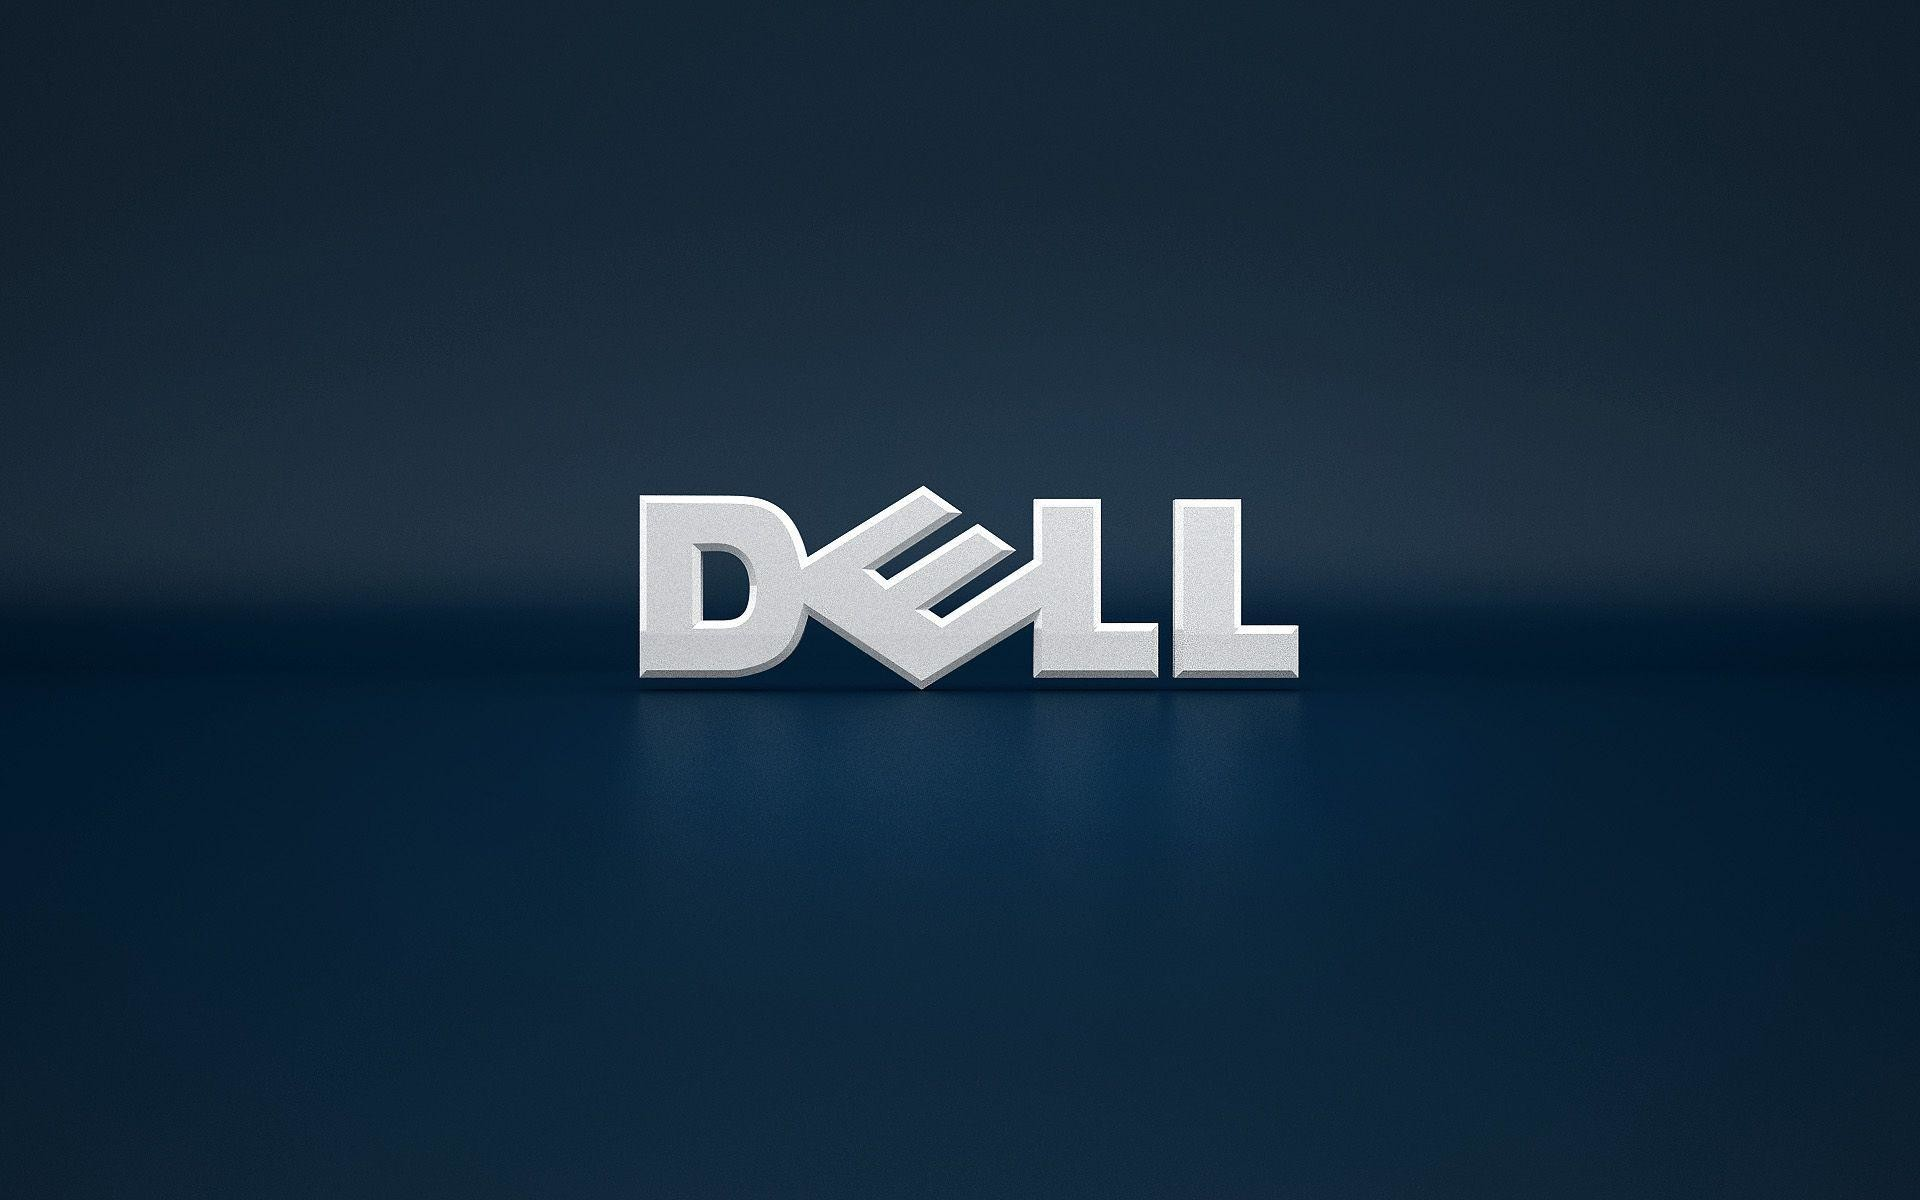 1920x1200 Dell Xps Blue Dell Wallpapers